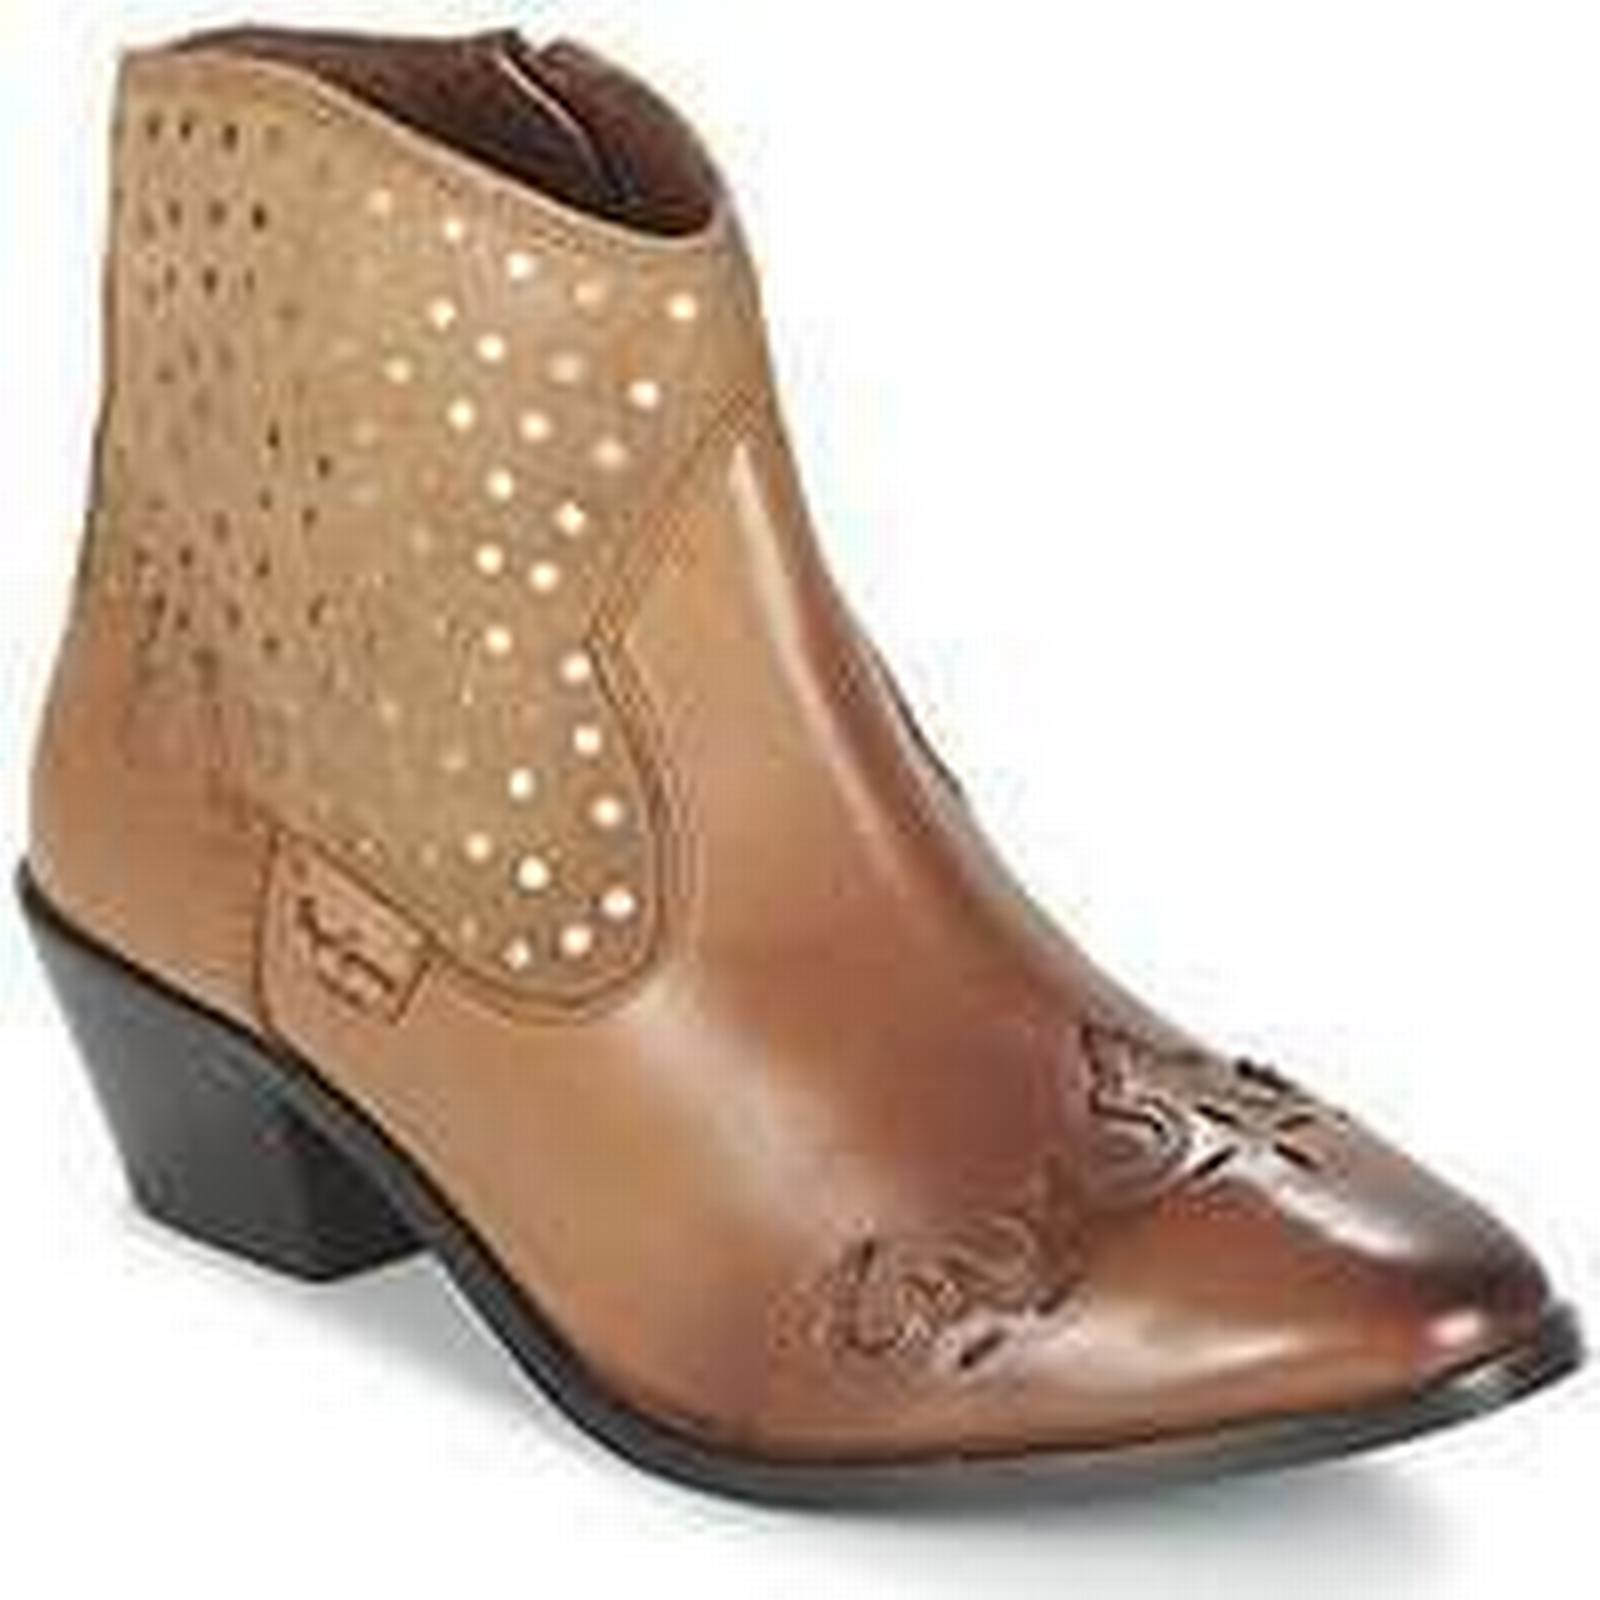 Spartoo.co.uk Pepe Mid jeans DINA STUDS women's Mid Pepe Boots in Brown d30282